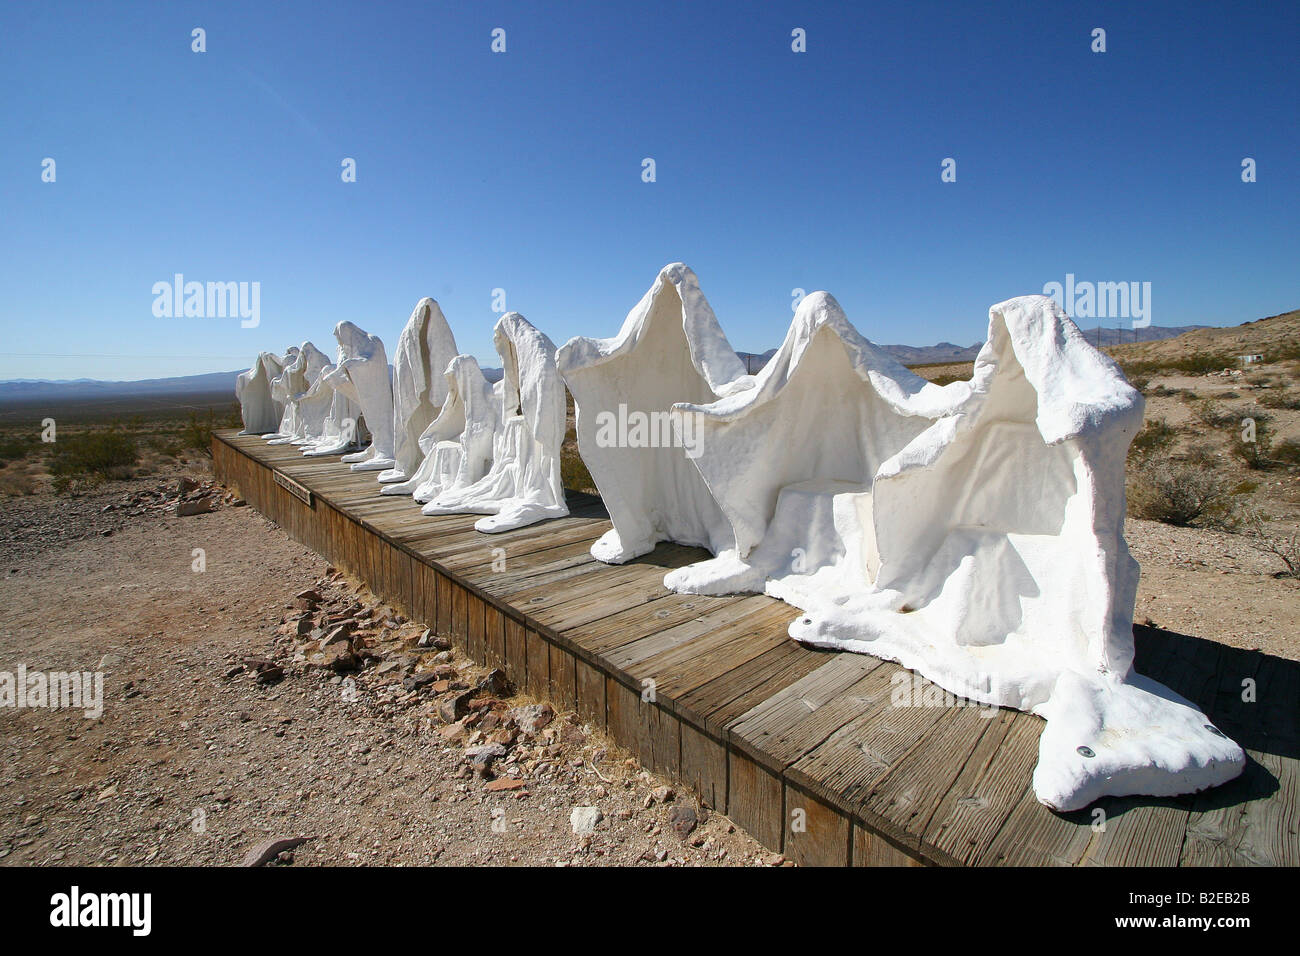 Sculptures of ghost on landscape, Goldwell Open Air Museum, Rhyolite, Nevada, USA - Stock Image